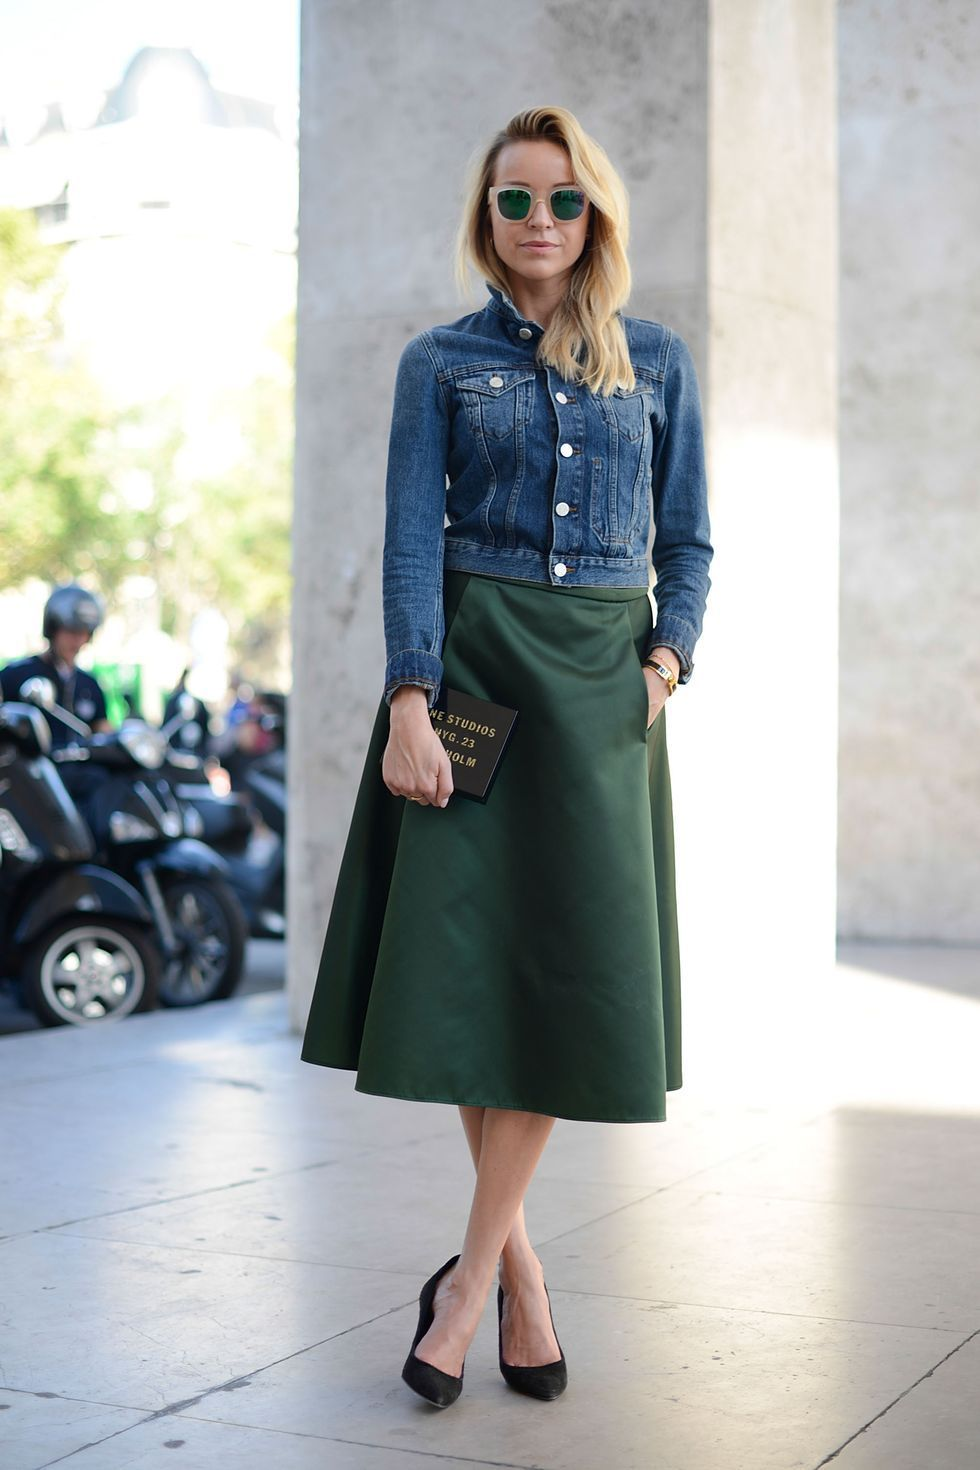 Cool-denim-jacket-for-women-with-dark-green-skirt-and-sunglasses-for-your-style-this-season